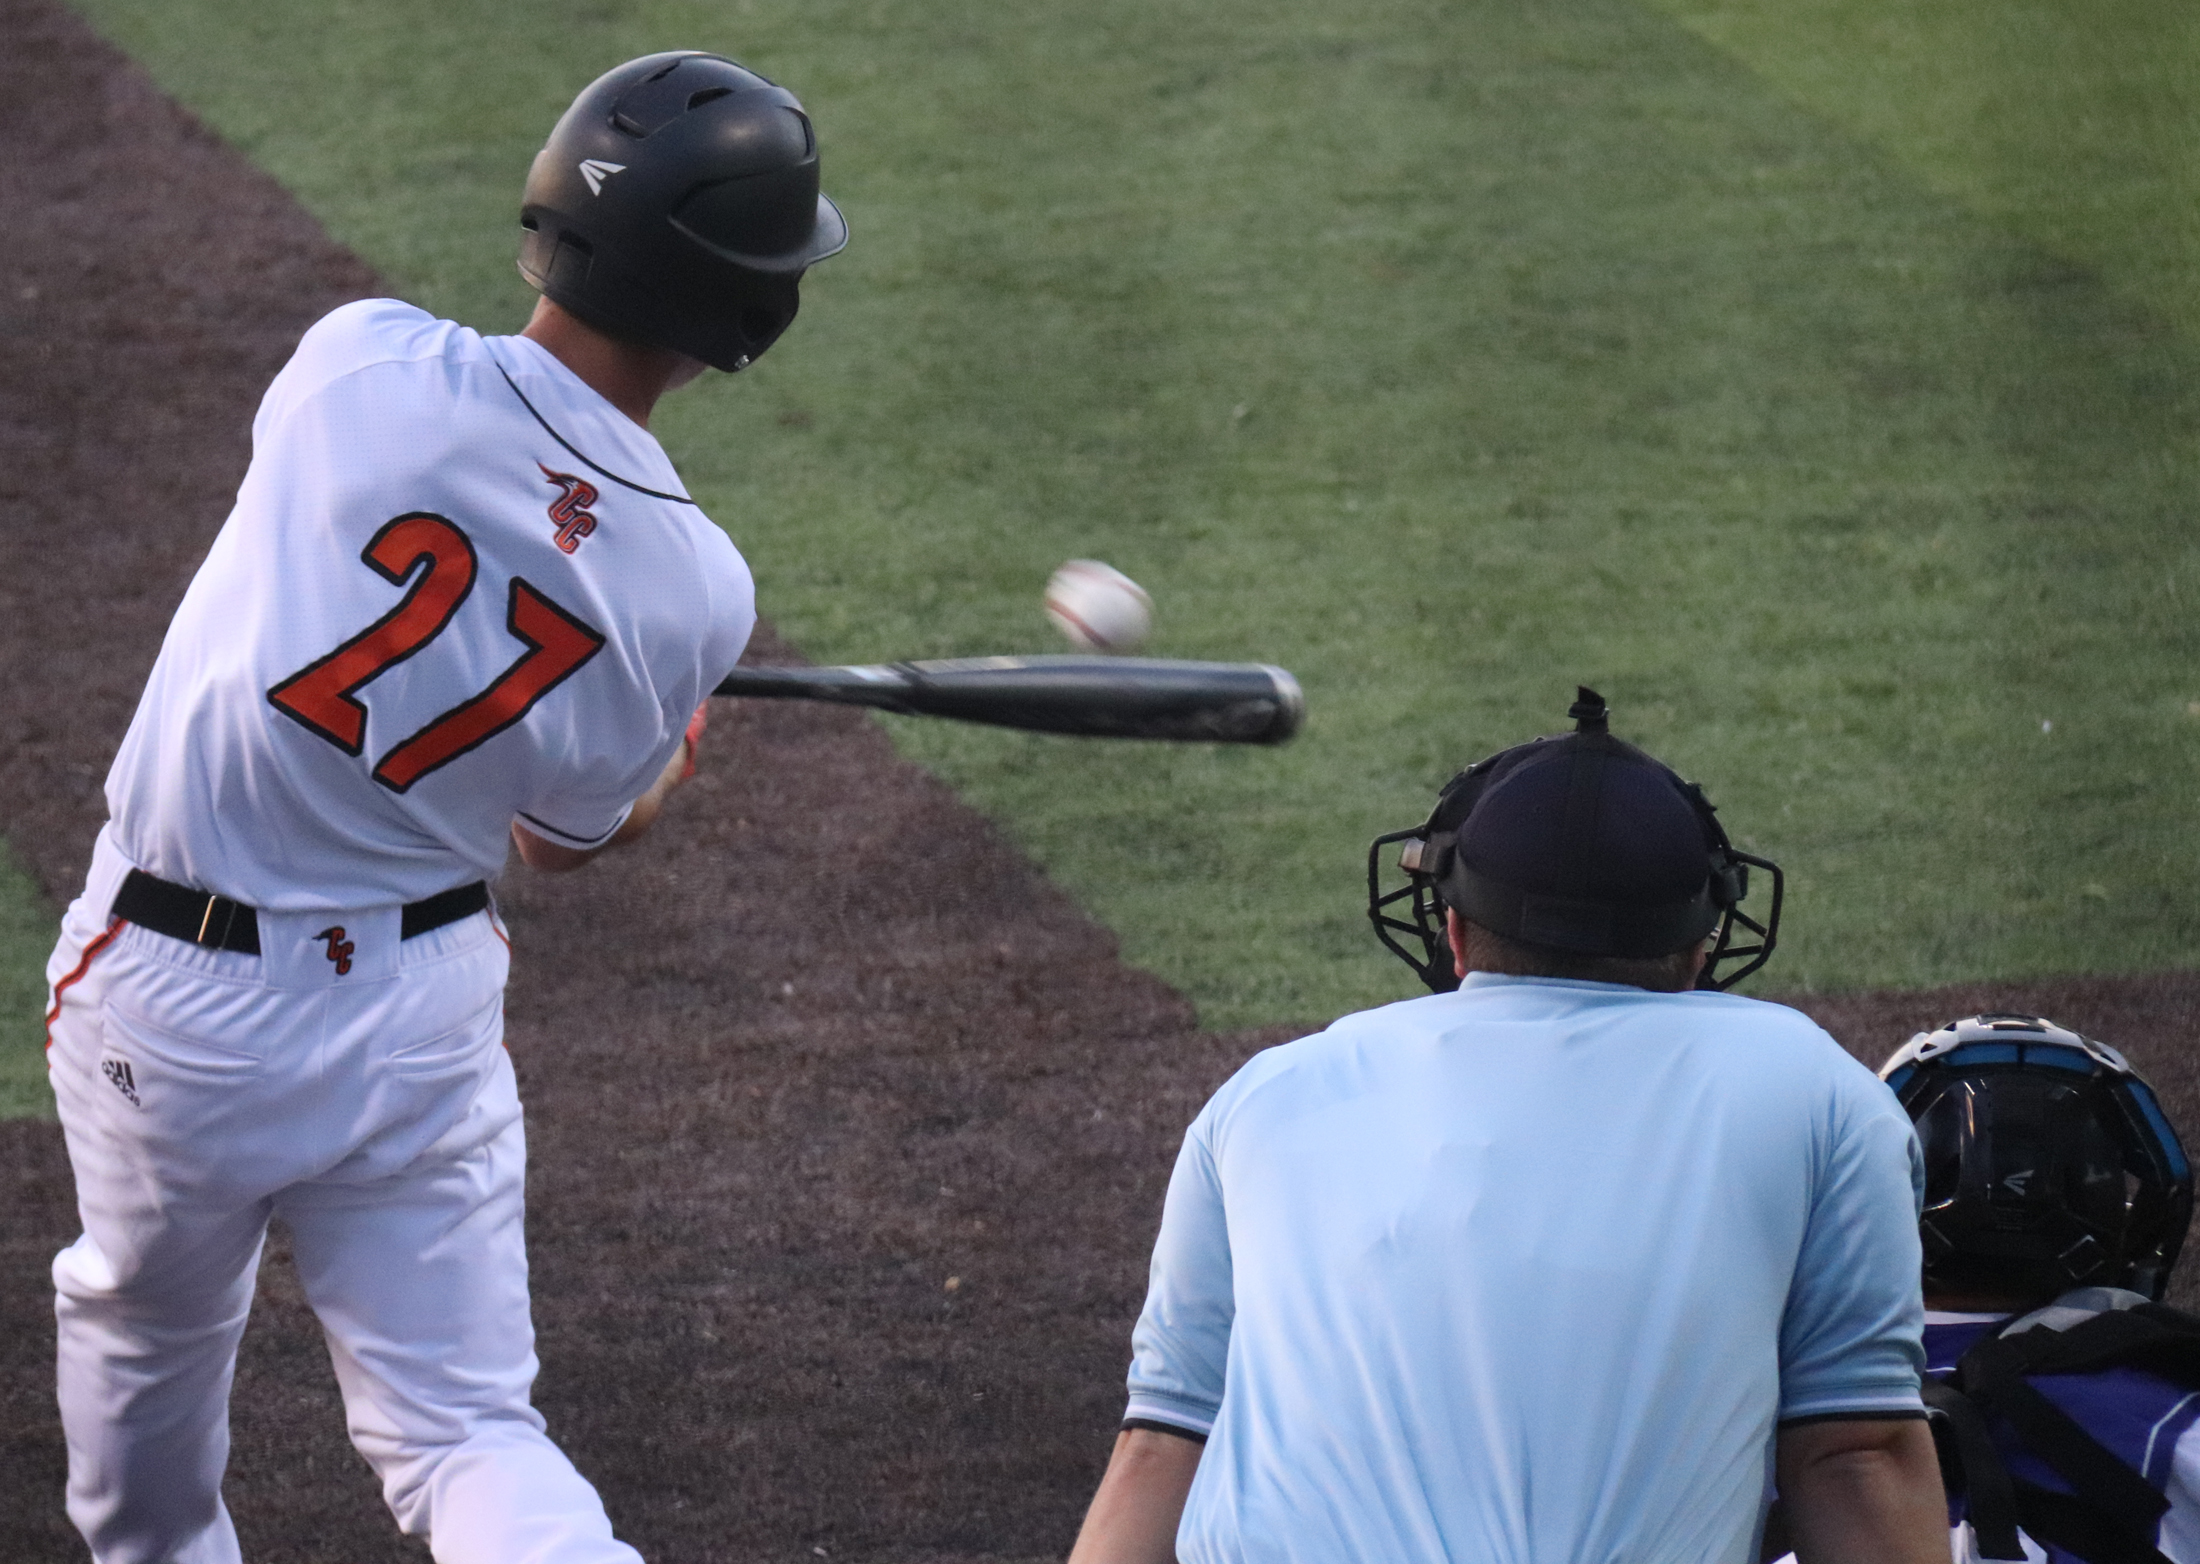 Wolverines rally to defeat Comets, 12-11, in extra innings